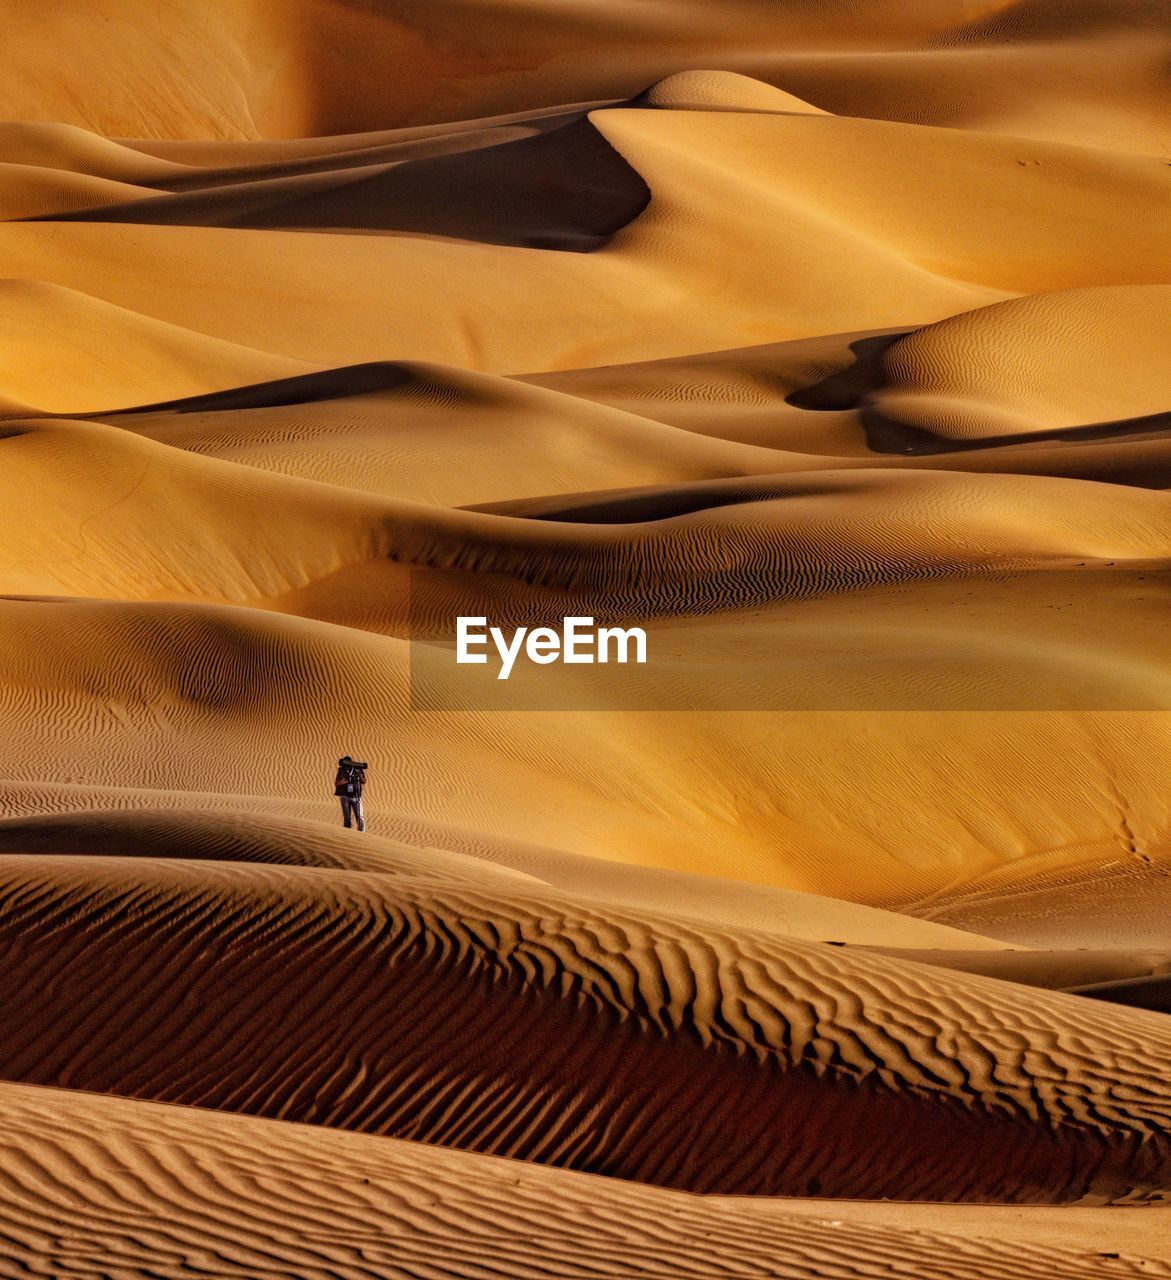 sand dune, desert, climate, arid climate, pattern, scenics - nature, sand, real people, land, one person, textile, unrecognizable person, landscape, lifestyles, nature, beauty in nature, men, furniture, day